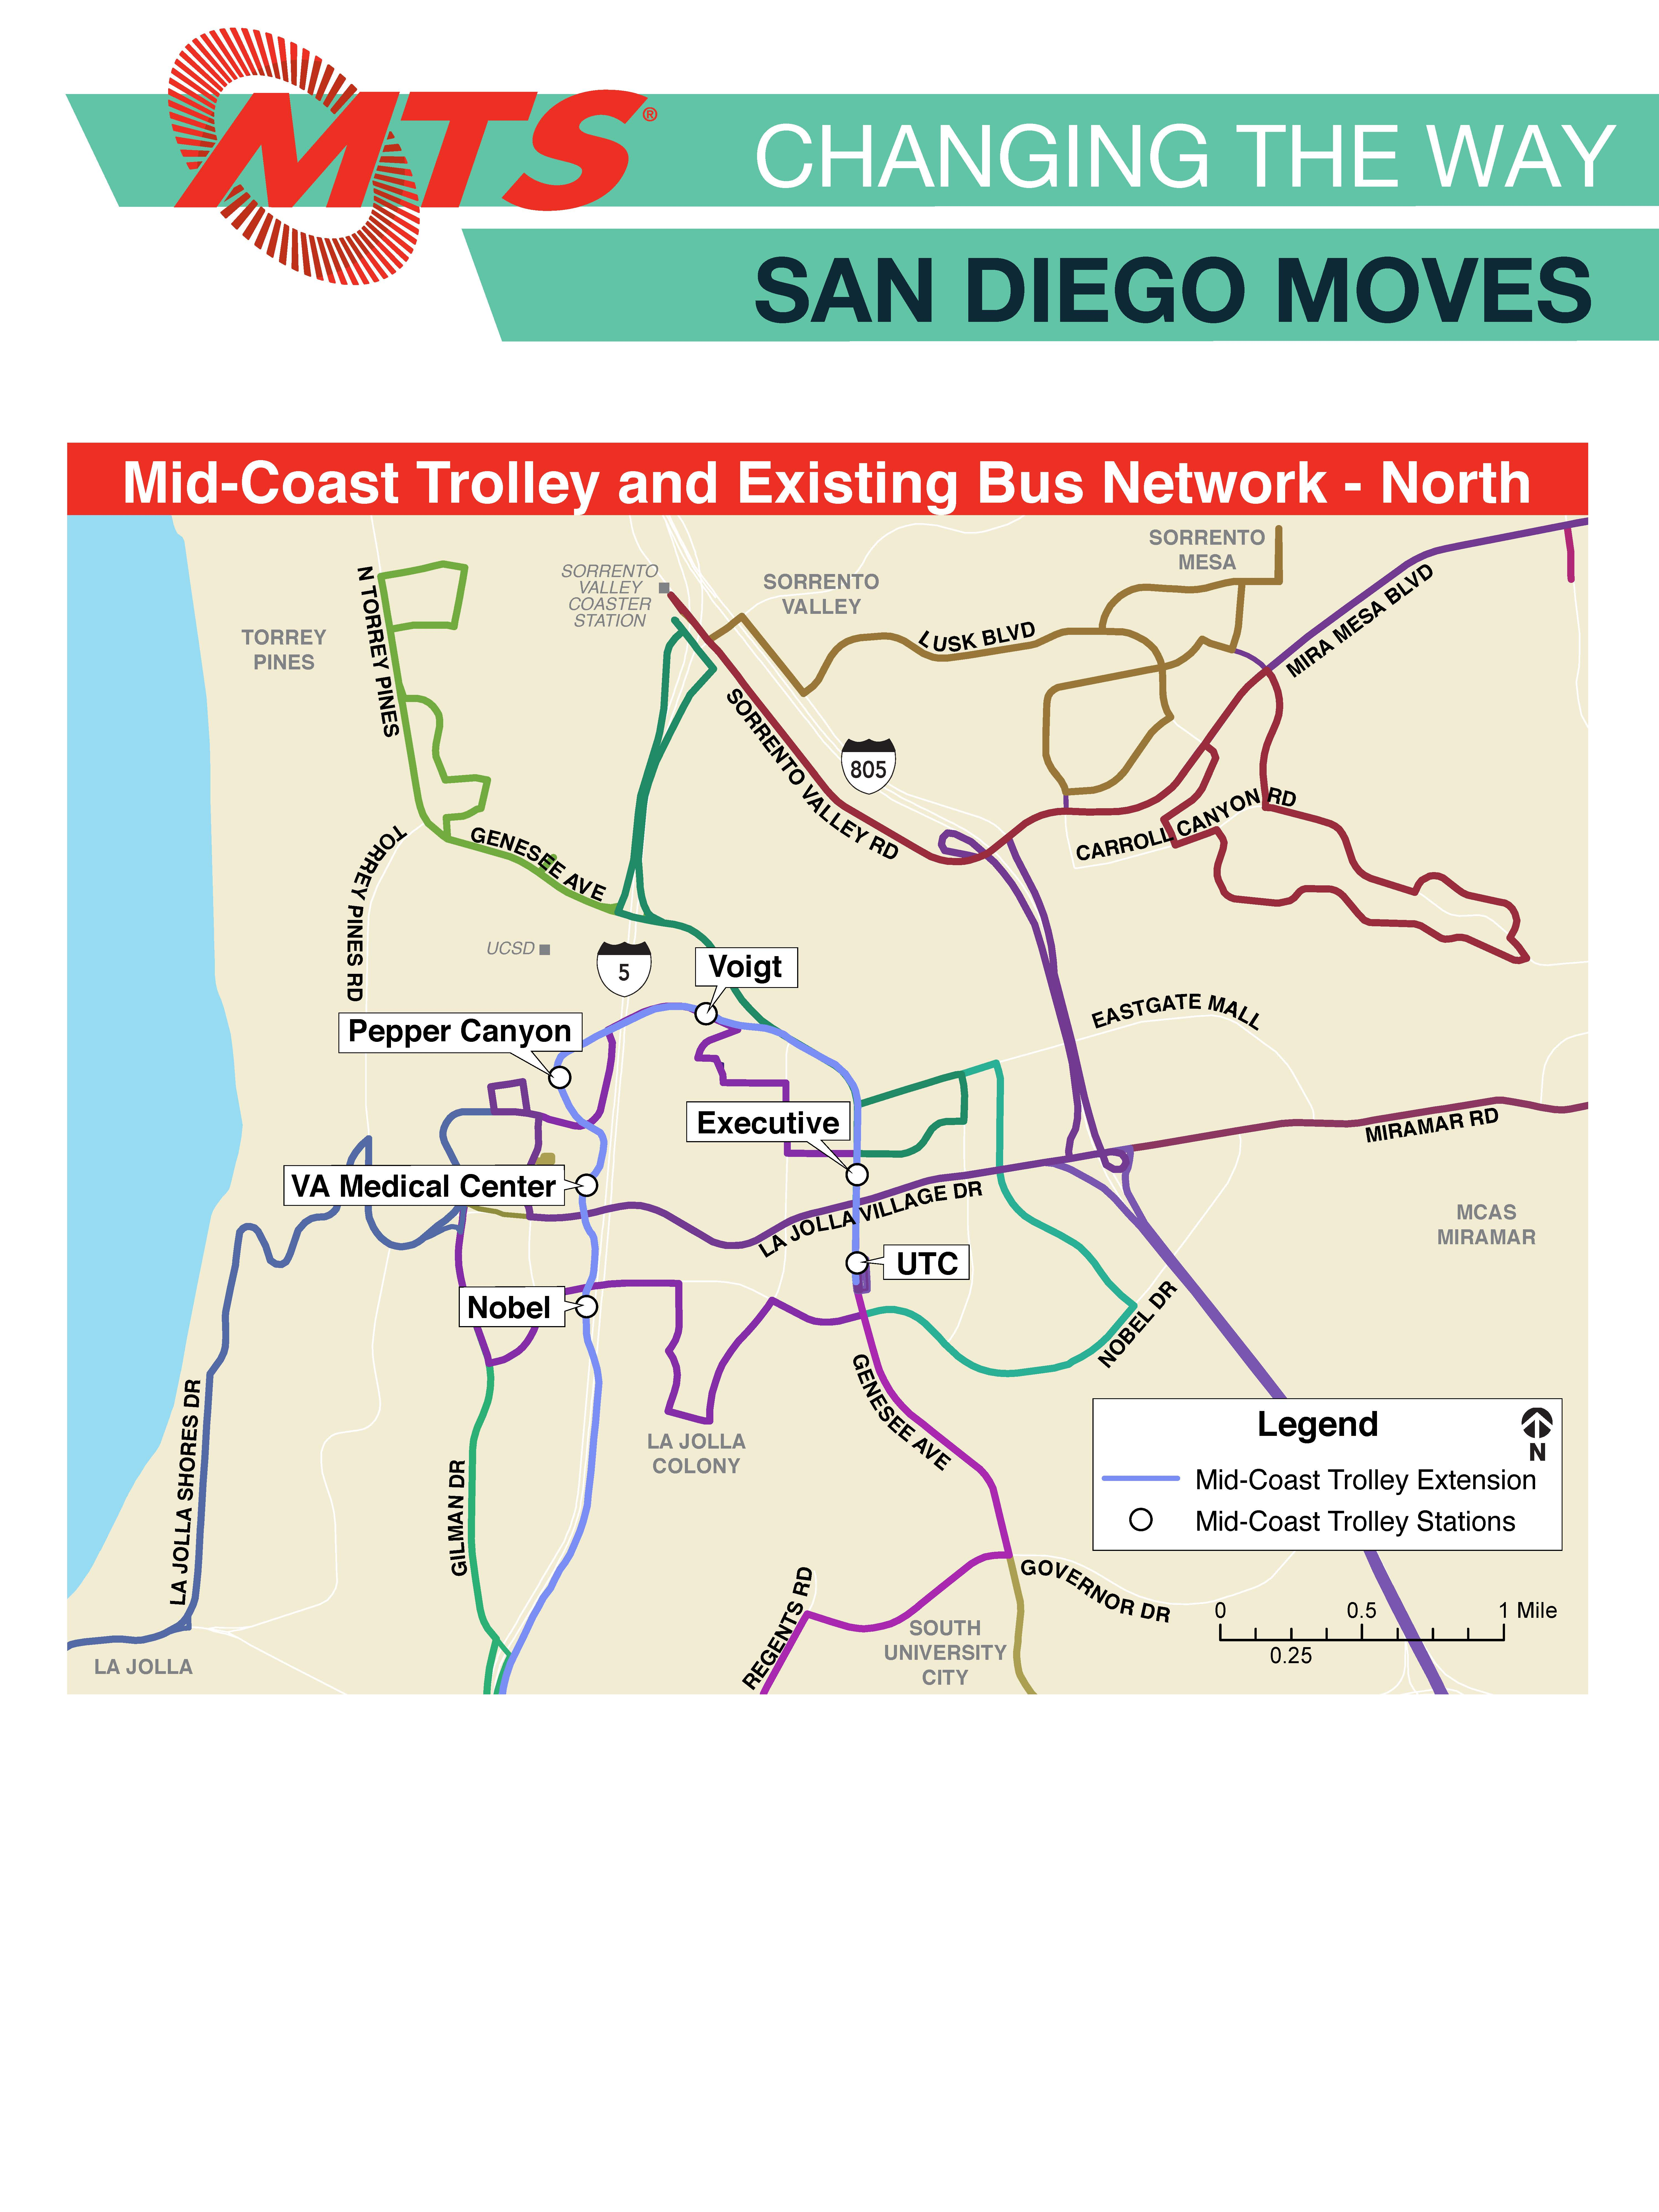 Mid-Coast Trolley Extension | San go Metropolitan Transit ... on miami trolley system map, pittsburgh trolley map, trolley bar map, san diego zoo map, trolley route in dallas, trolley map san francisco, trolley trail map, charlotte light rail map, denver light rail map,